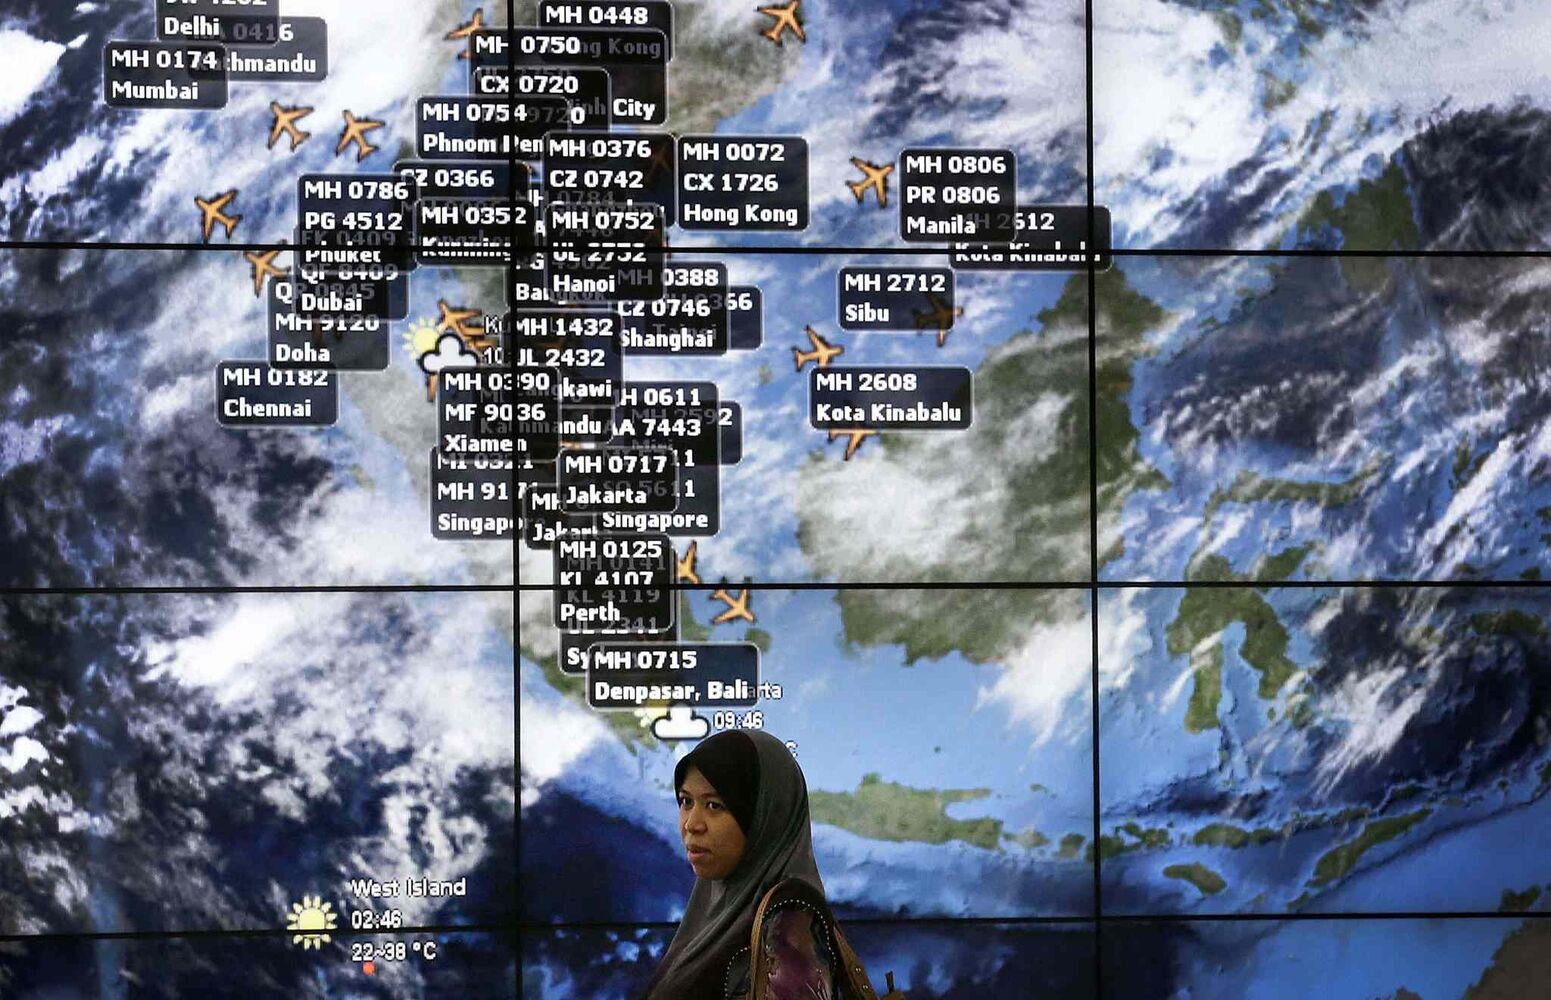 A lady stands in front of an electronic display showing live information of flight positions according to predicted time and flight duration calculations at the Kuala Lumpur International Airport, Sunday, March 16, 2014 in Sepang, Malaysia. Malaysian authorities Sunday were investigating the pilots of the missing jetliner after it was established that whoever flew off with the Boeing 777 had intimate knowledge of the cockpit and knew how to avoid detection when navigating around Asia.